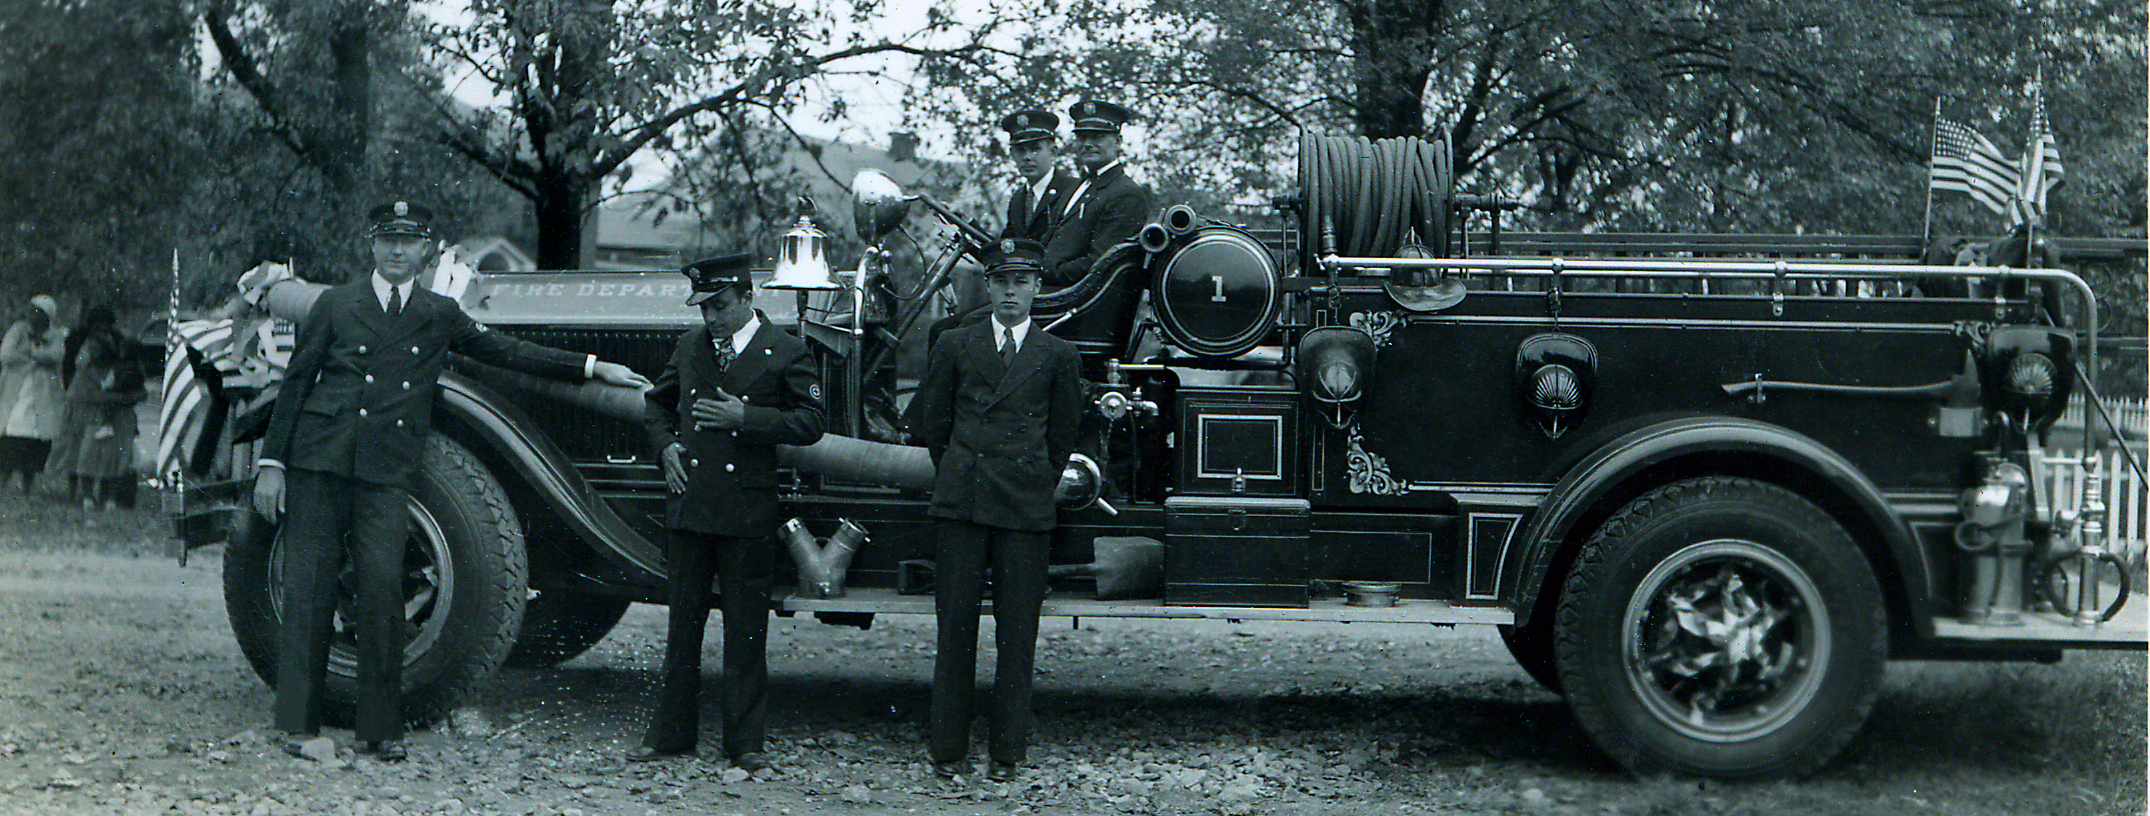 Historic photo of Fire Engine Number one with fire fighters standing in front